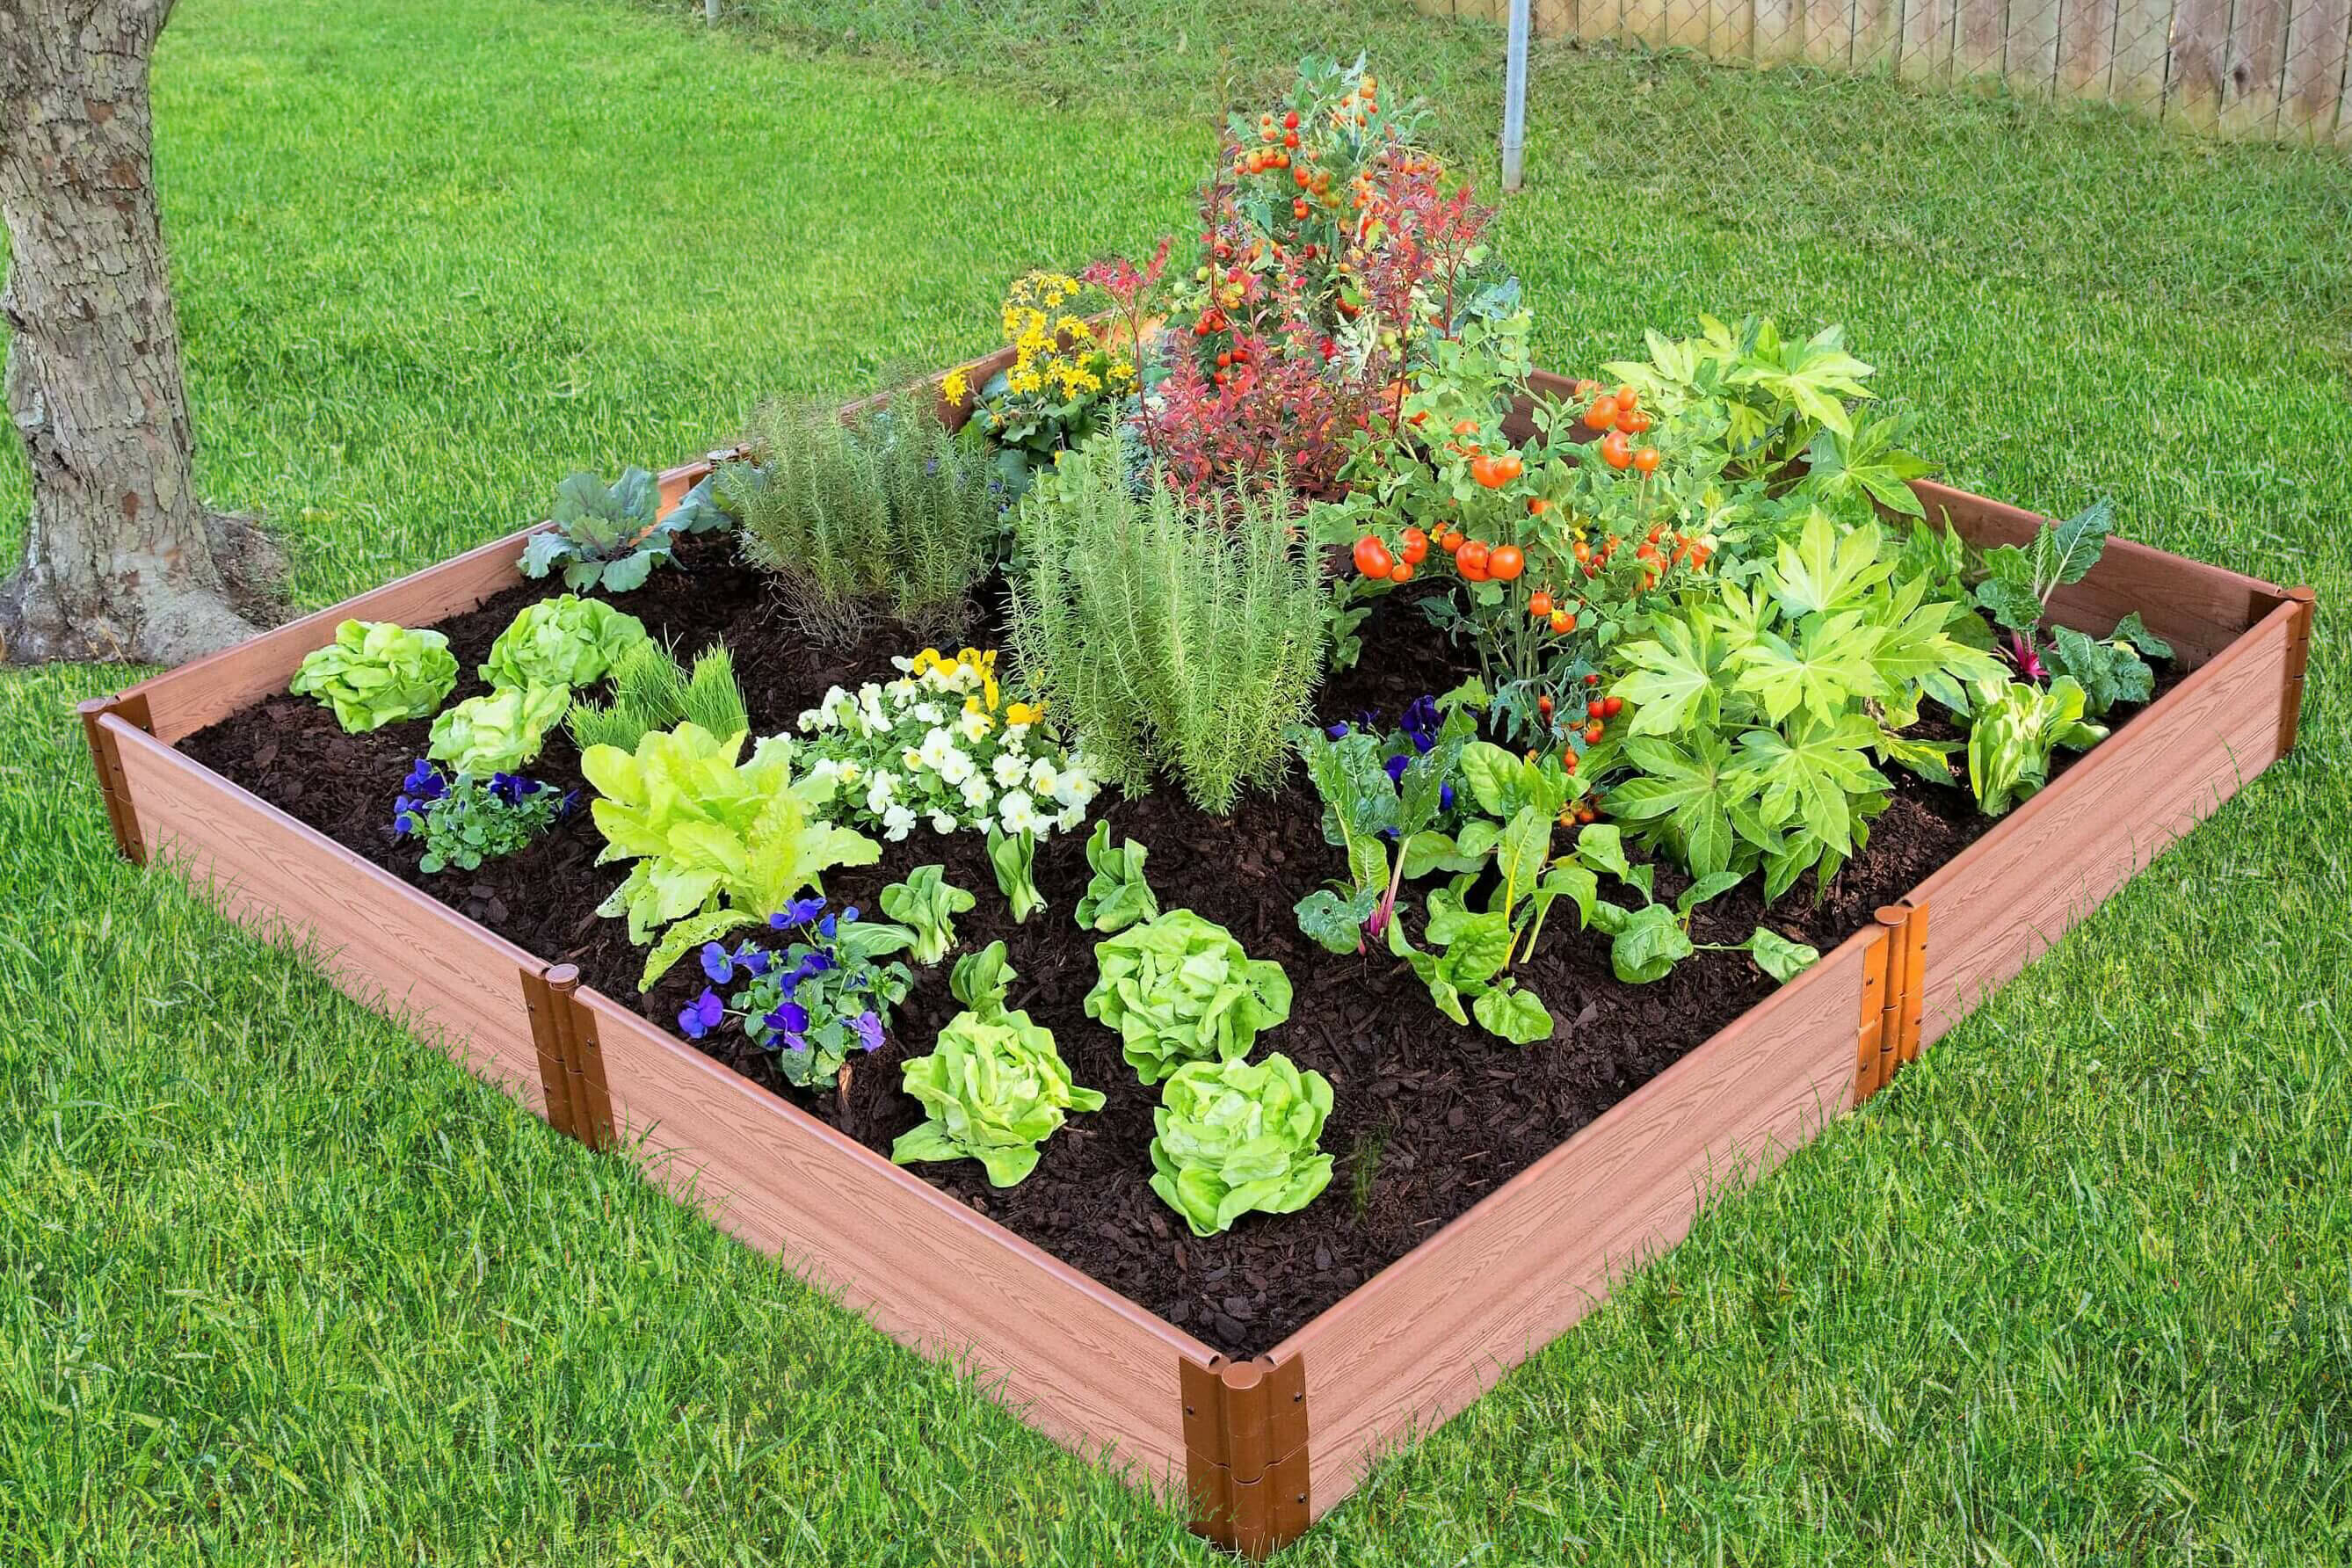 Frame It All Tool Free Classic Sienna One Inch Series 8 Ft X 8 Ft Composite Raised Garden Wayfair